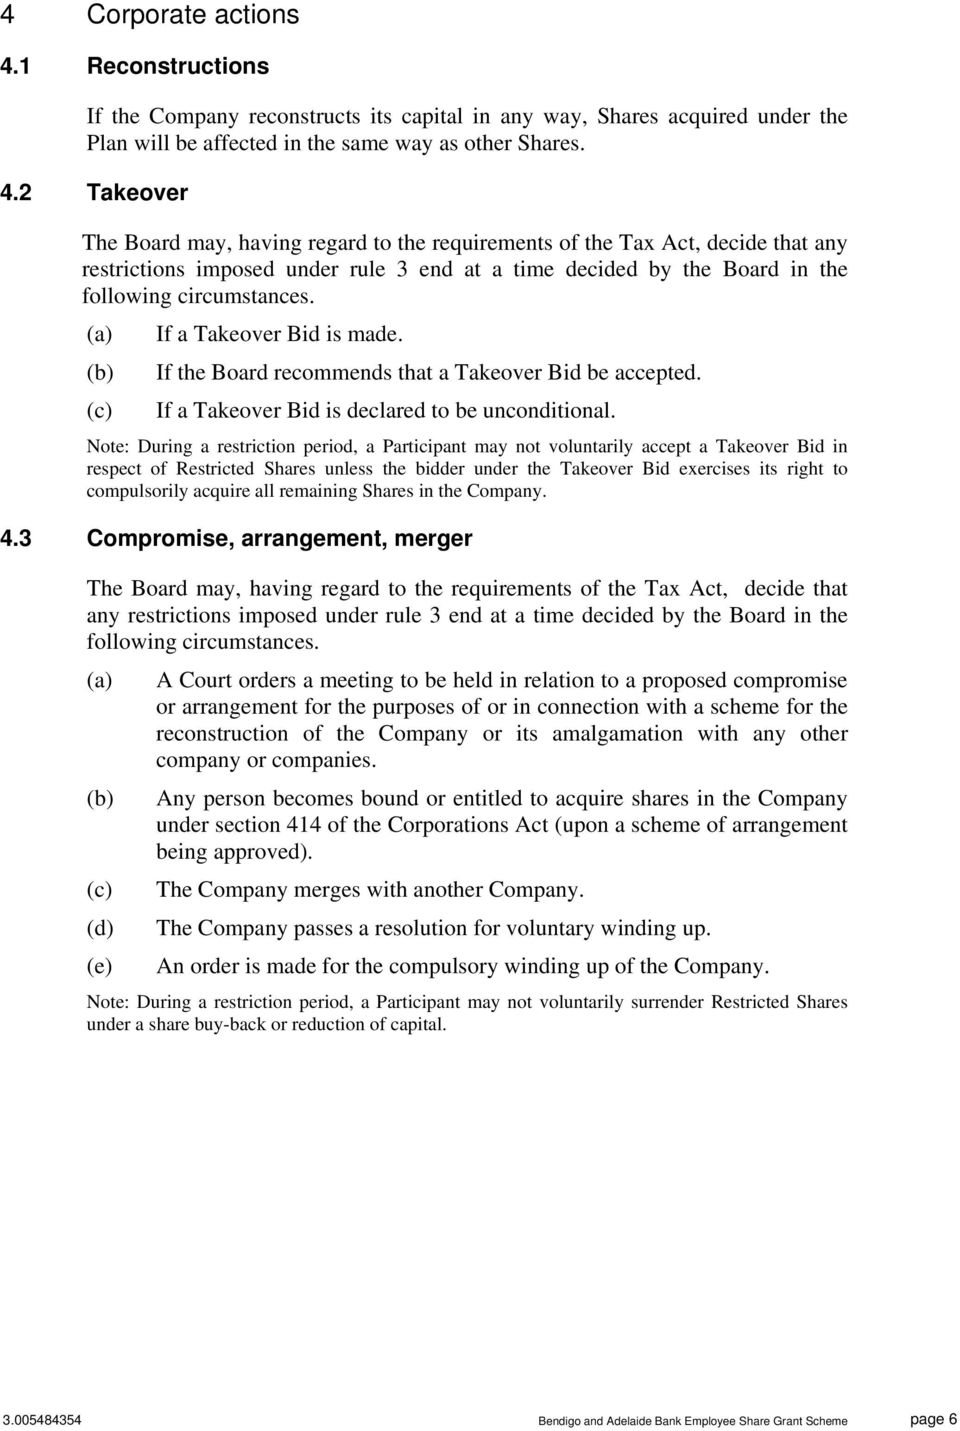 2 Takeover The Board may, having regard to the requirements of the Tax Act, decide that any restrictions imposed under rule 3 end at a time decided by the Board in the following circumstances.